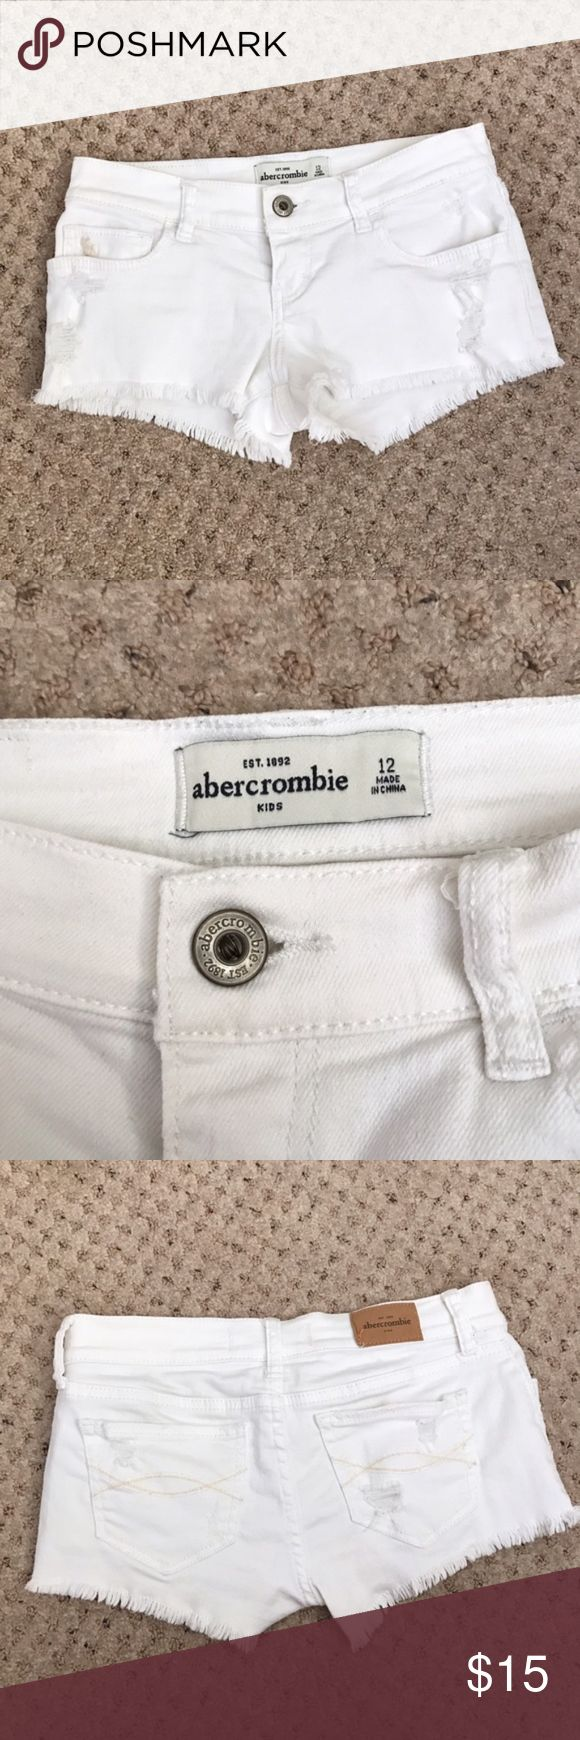 Abercrombie Kids White Distressed Shorts Abercrombie kids white distressed shorts size 12 in great condition!    🚫No trades or modeling  📦Same/next day shipping abercrombie kids Bottoms Shorts